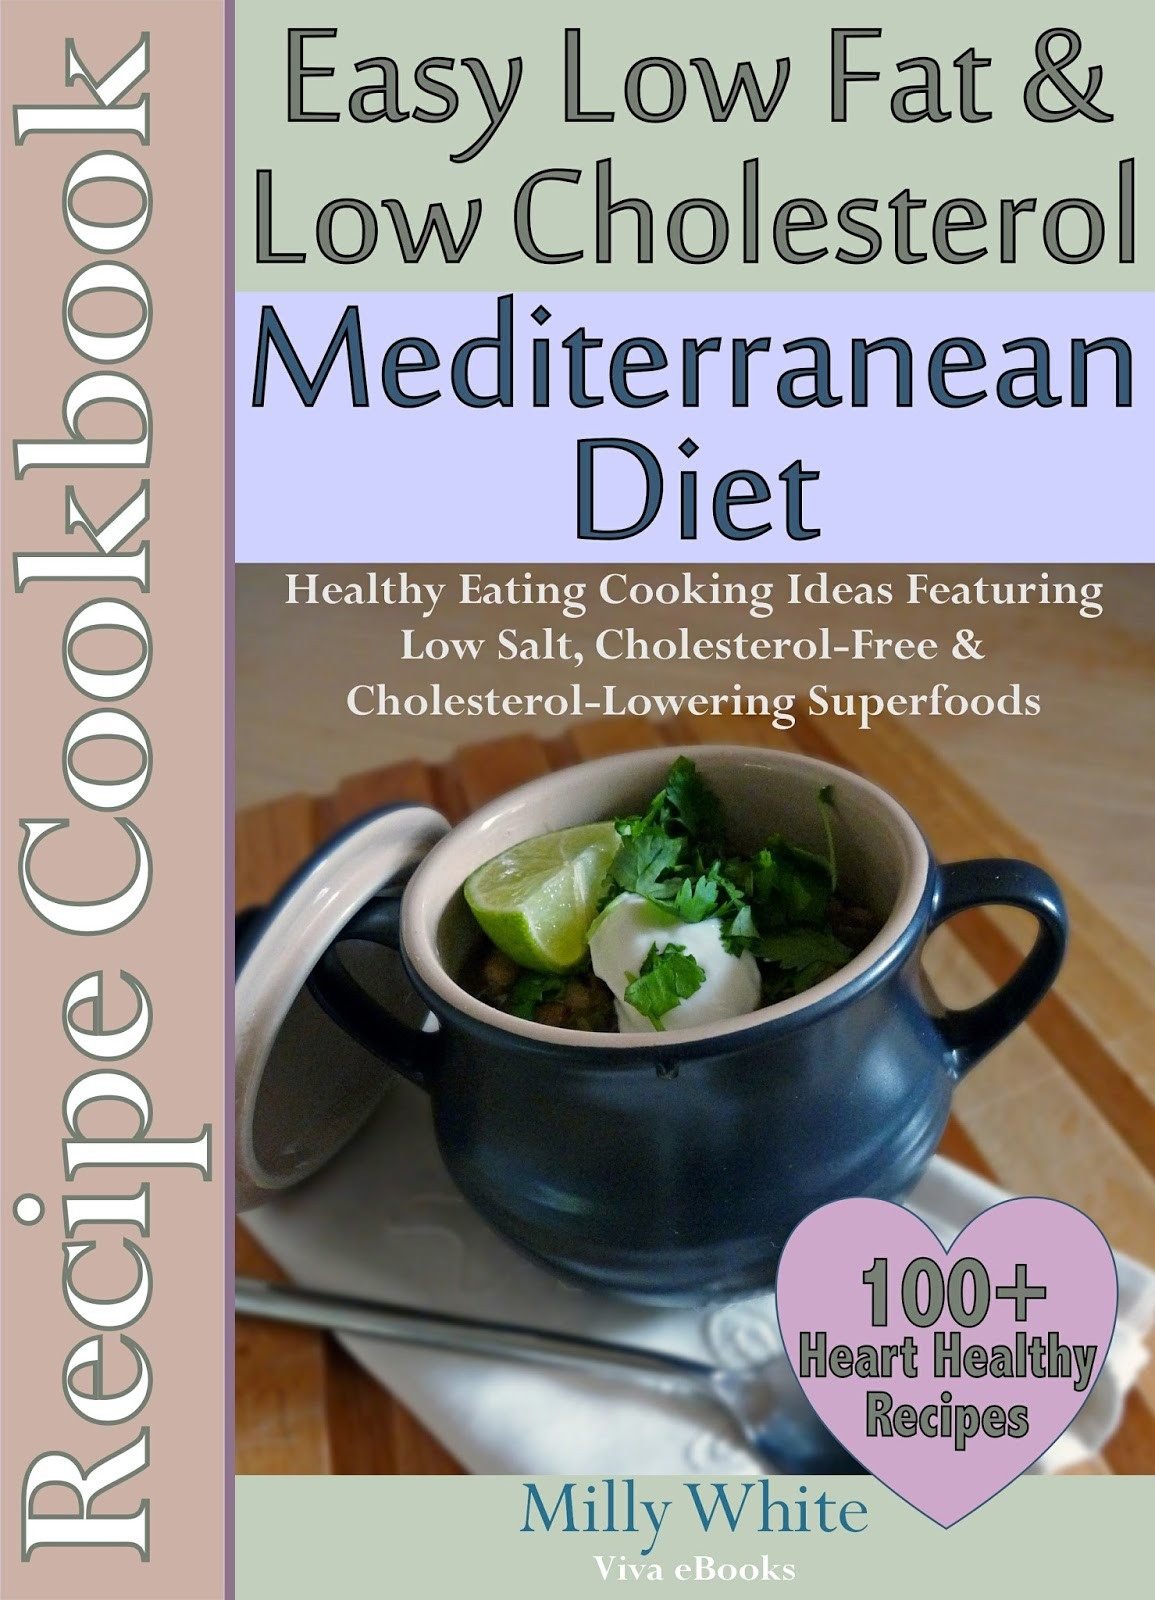 Recipes For Low Cholesterol Diets  Dips Delectus Cholesterol The Silent Killer for